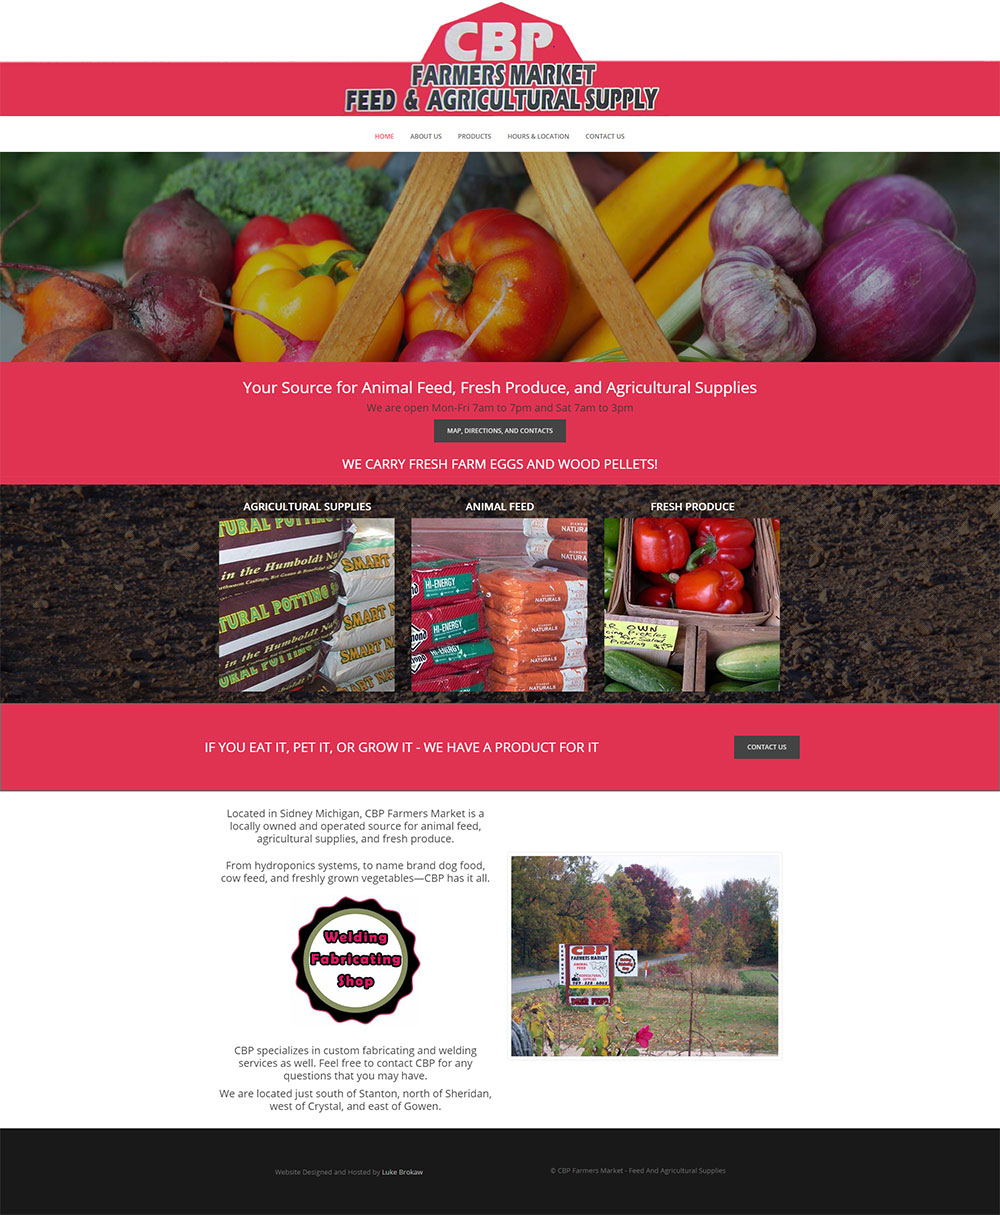 Home Page for CBP Farmers Market designed by Luke Brokaw